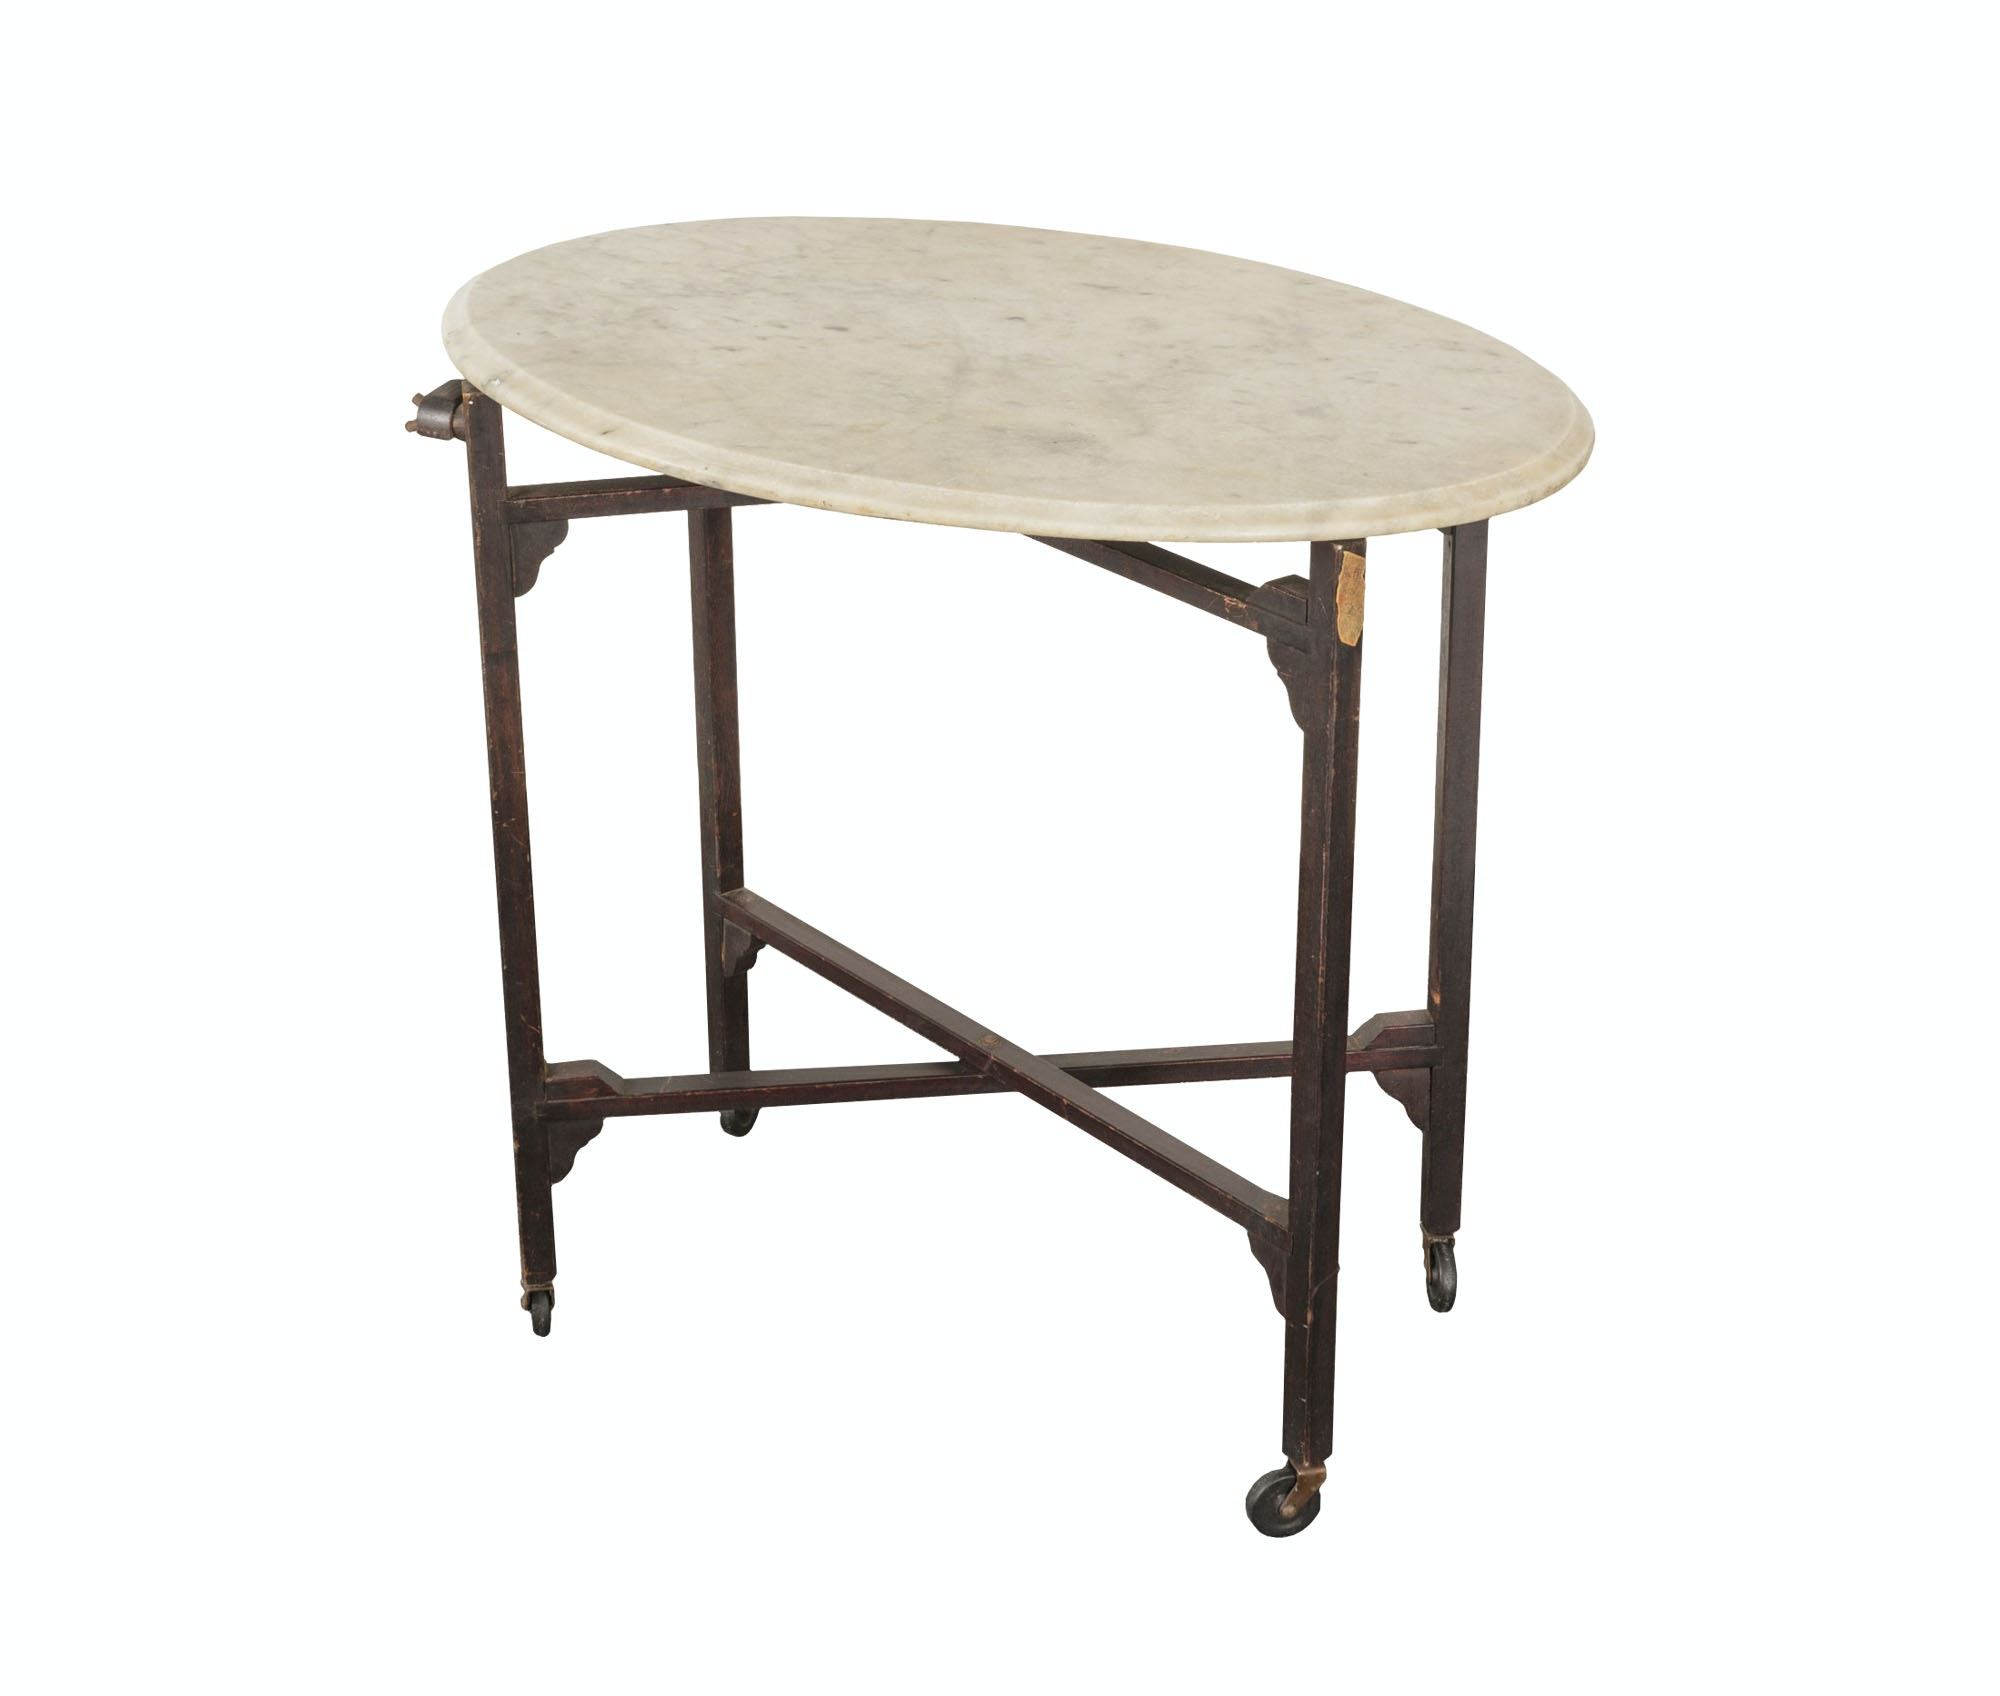 Vintage Marble Top Side Table with Folding Wooden Frame by E.J. Schwabe